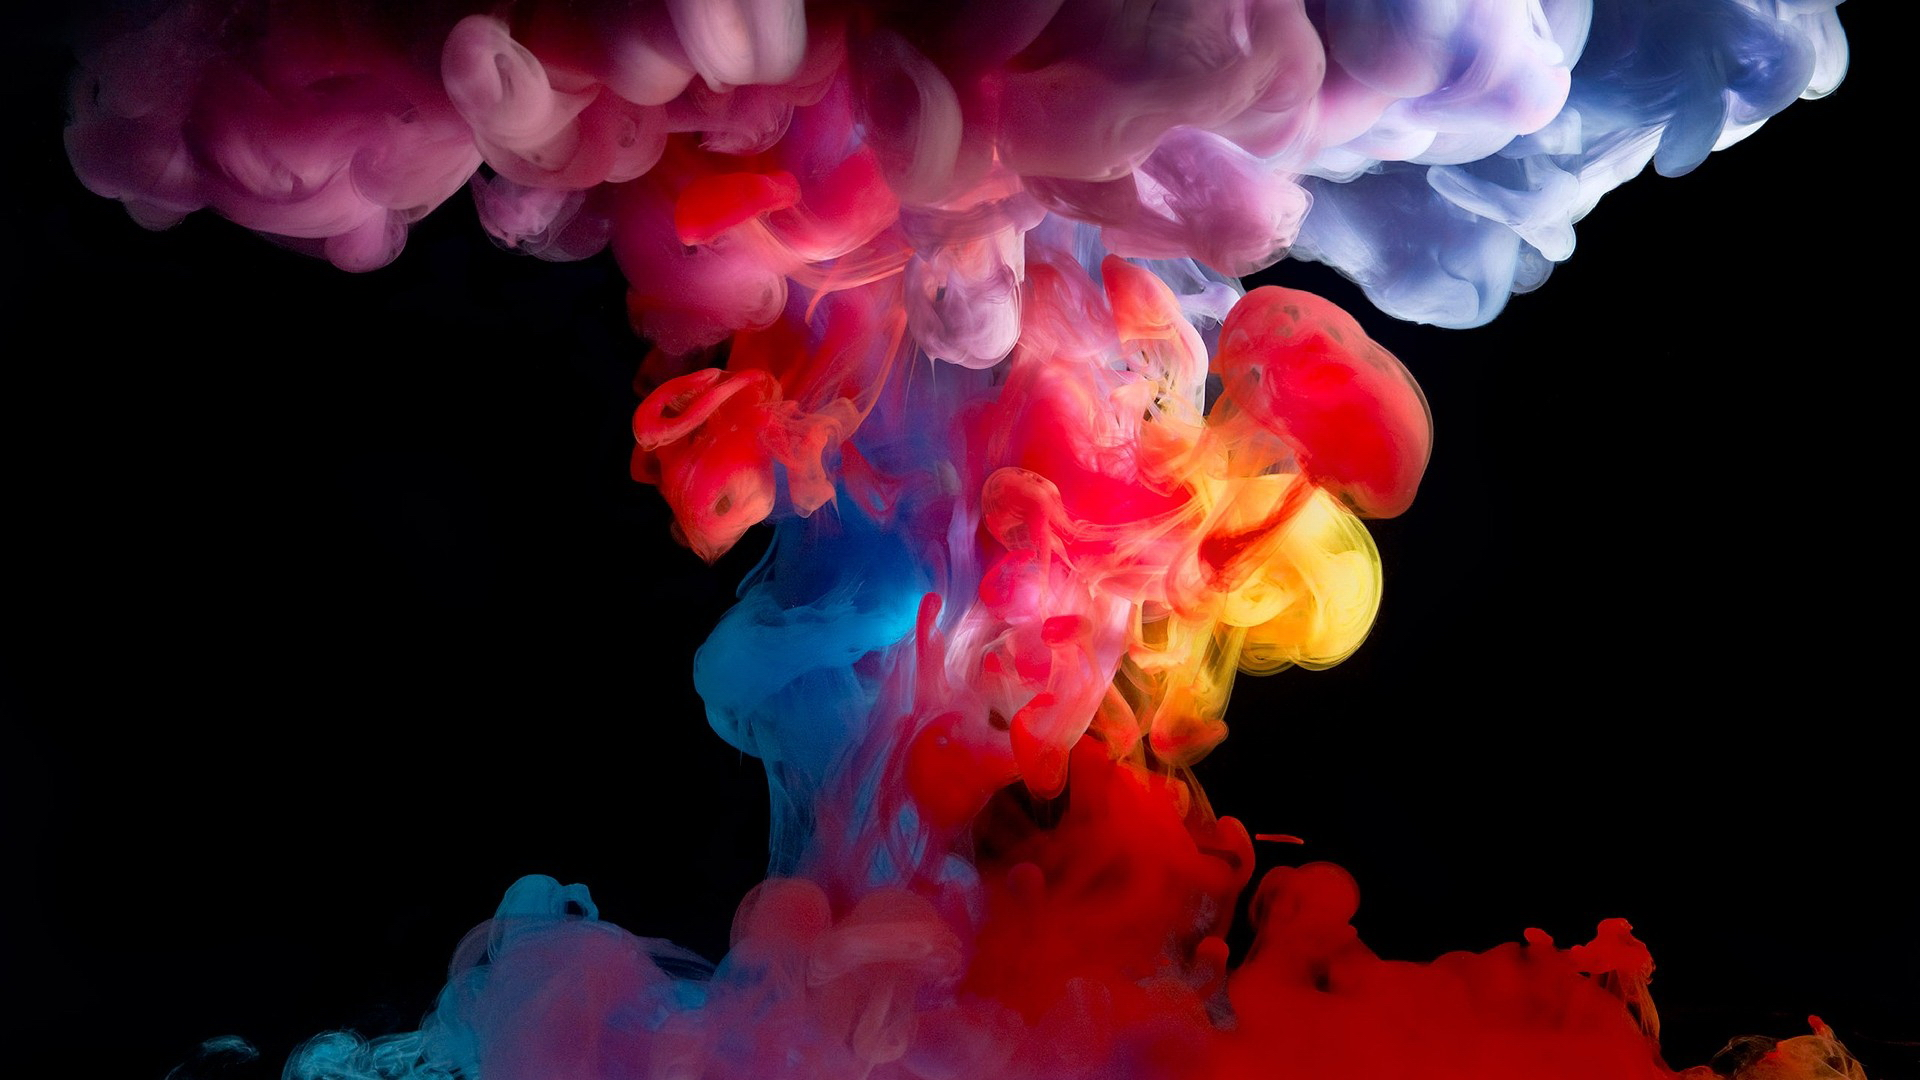 Download Colorful Smoke Wallpaper Wallpapers 1920x1080